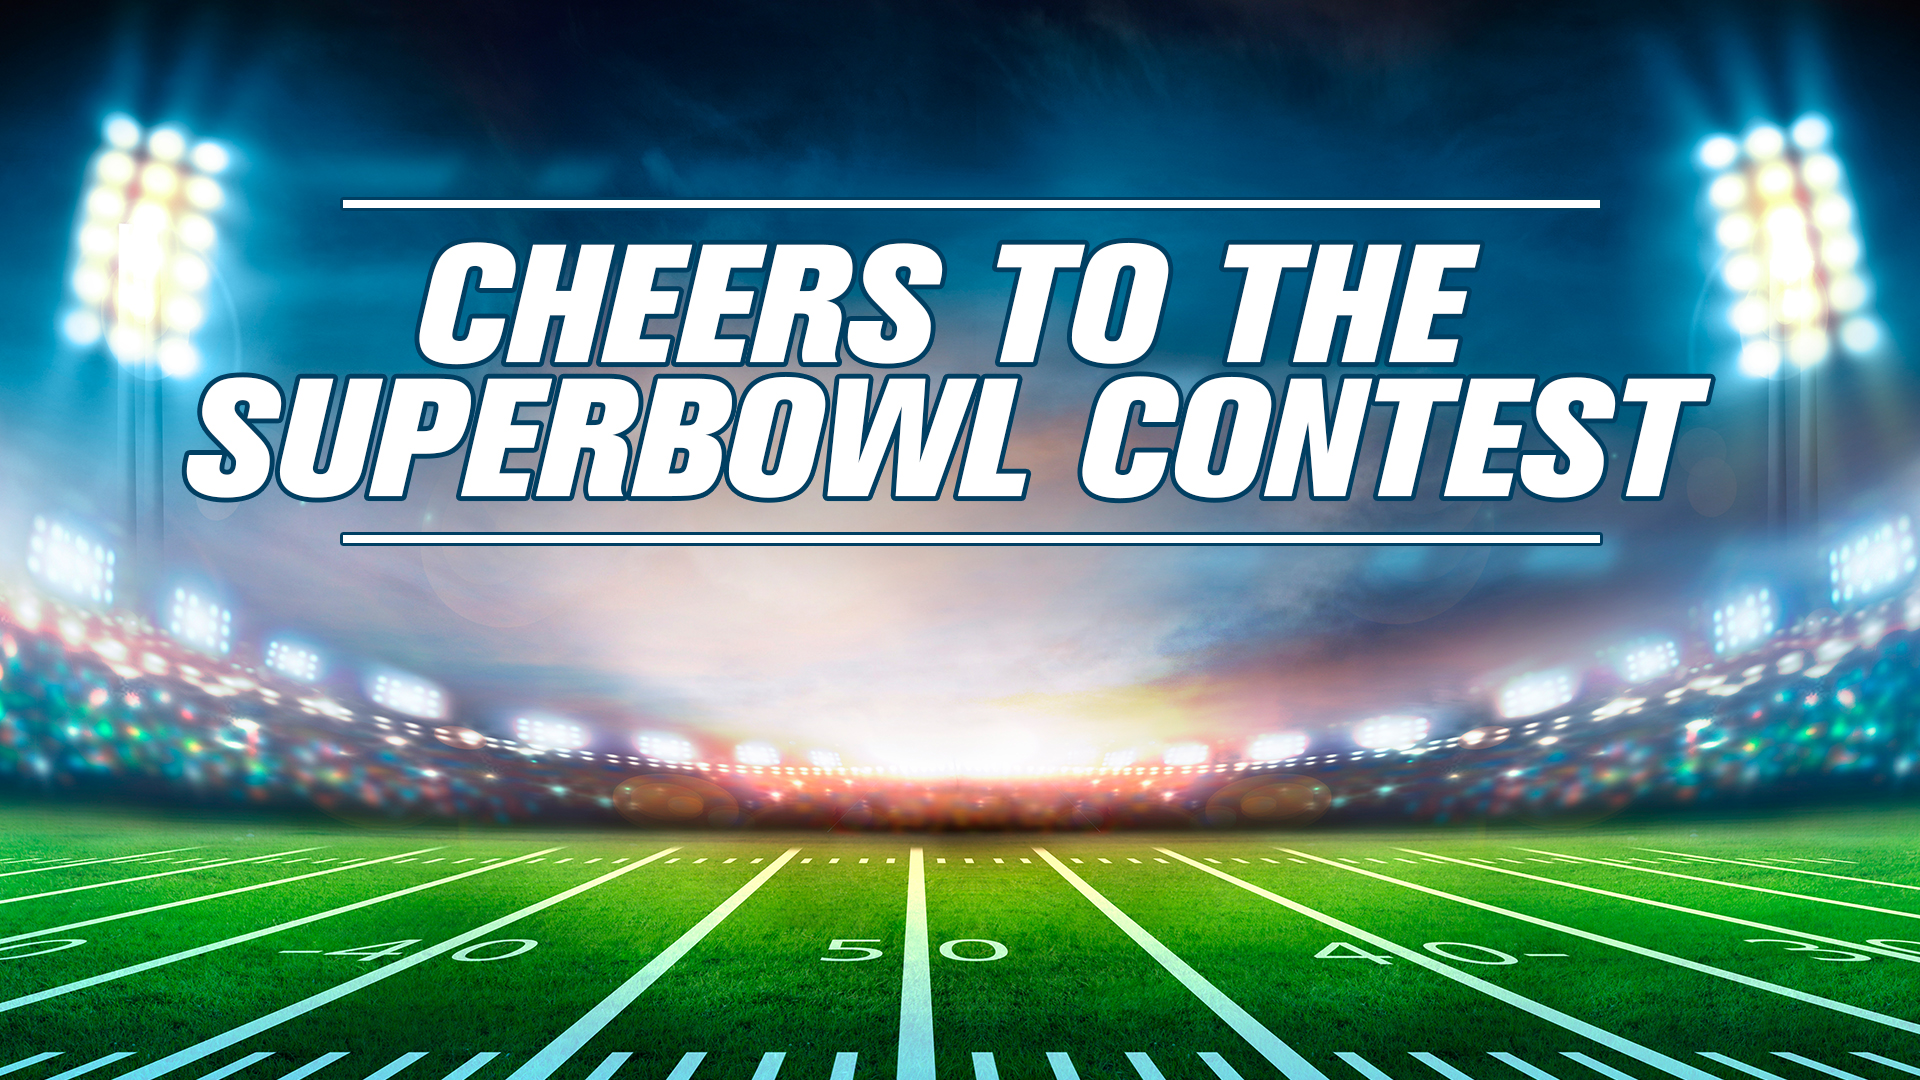 essay contest super bowl tickets The doritos super bowl 2018 commercial will be a new  entered gives you the chance to win tickets to super bowl liii in  most out of a short essay.